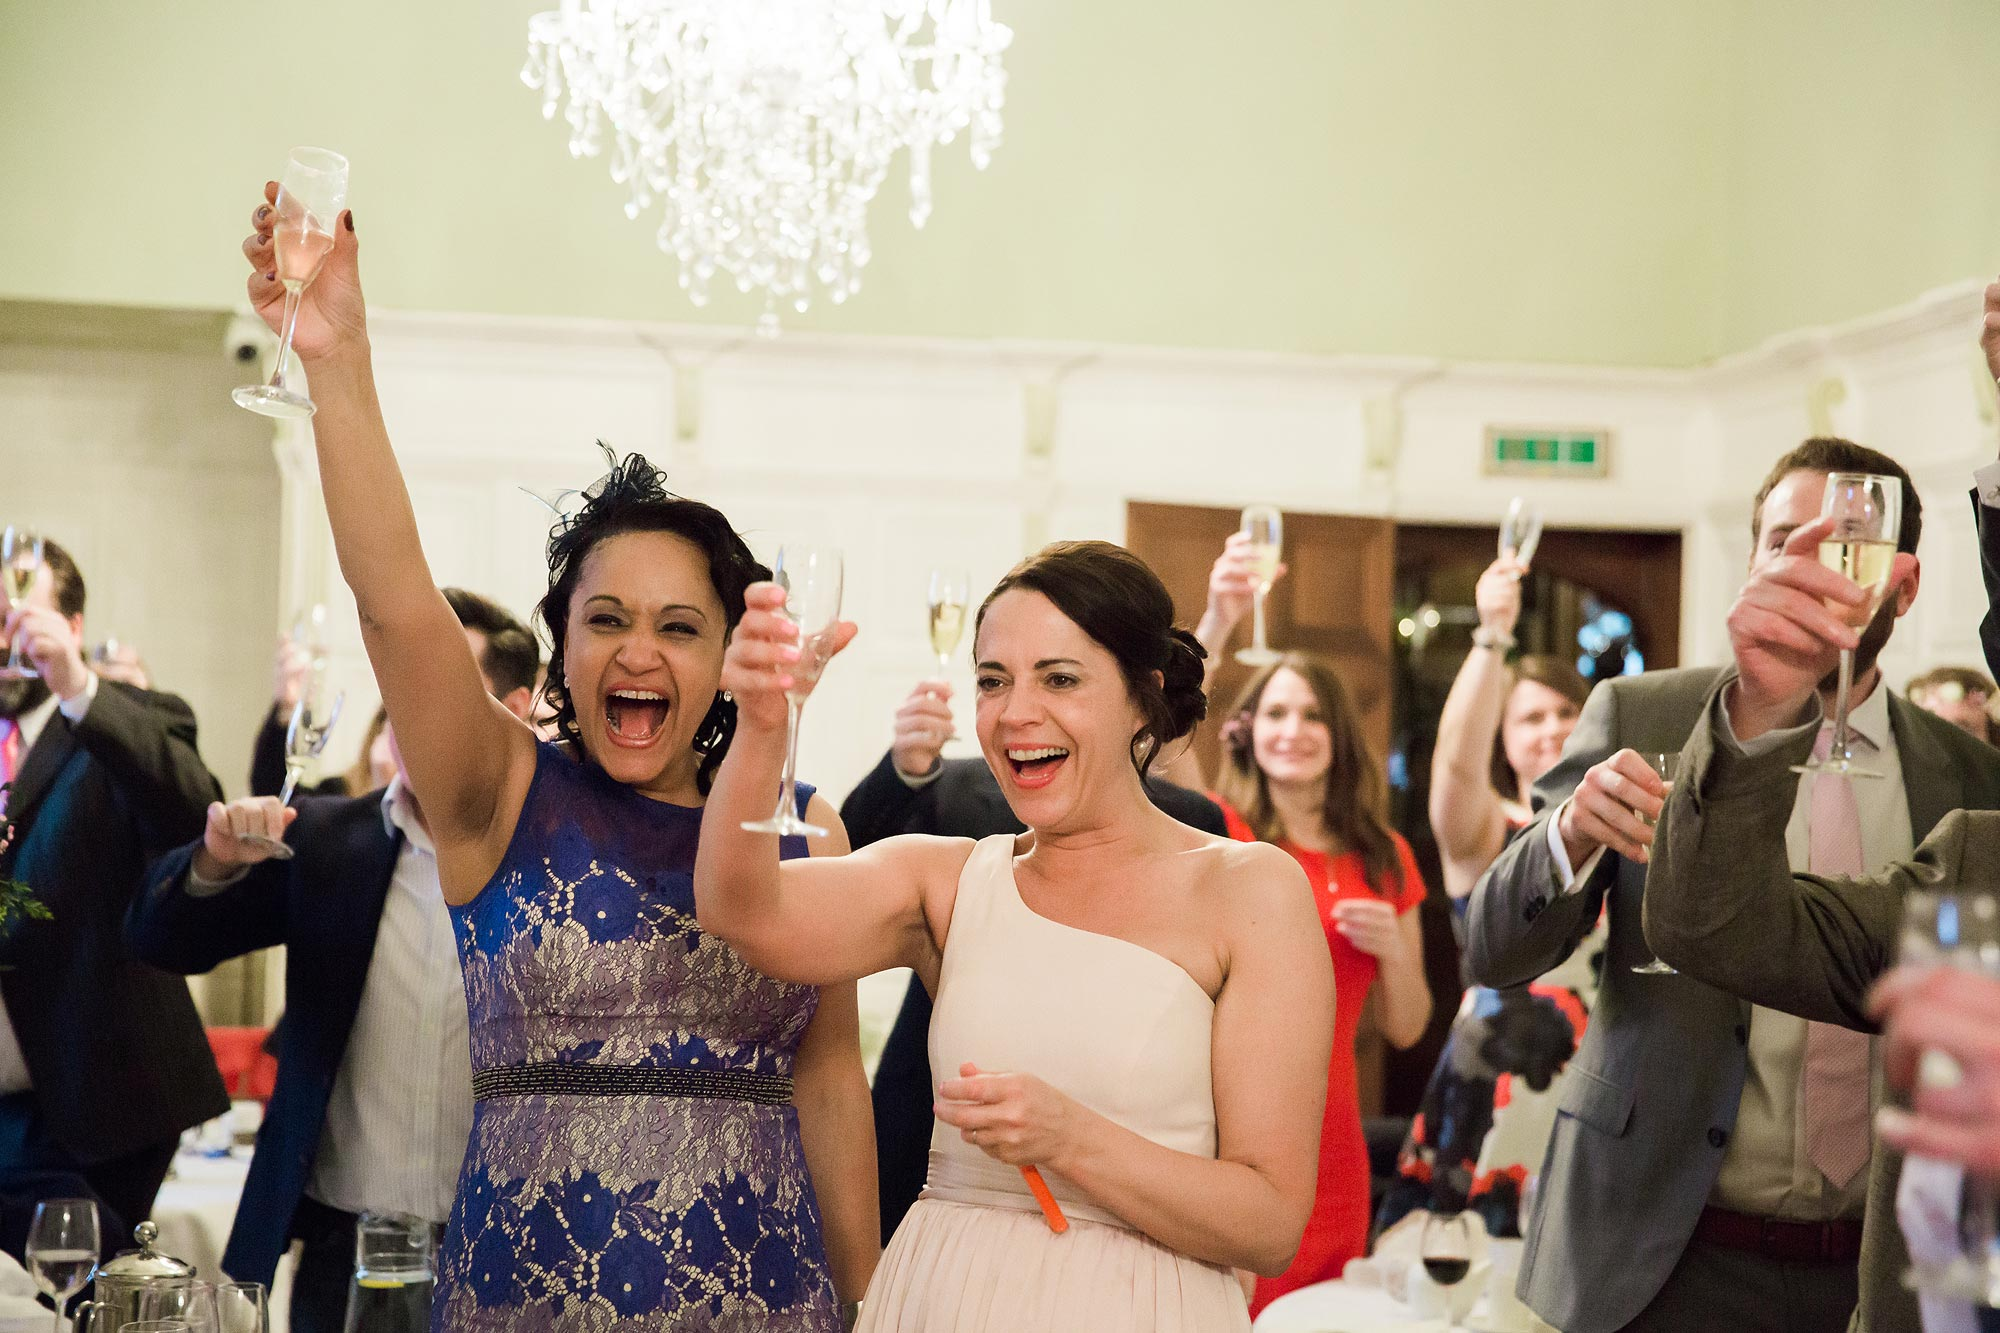 The guest toasting to the couple at Hengrave Hall Wedding